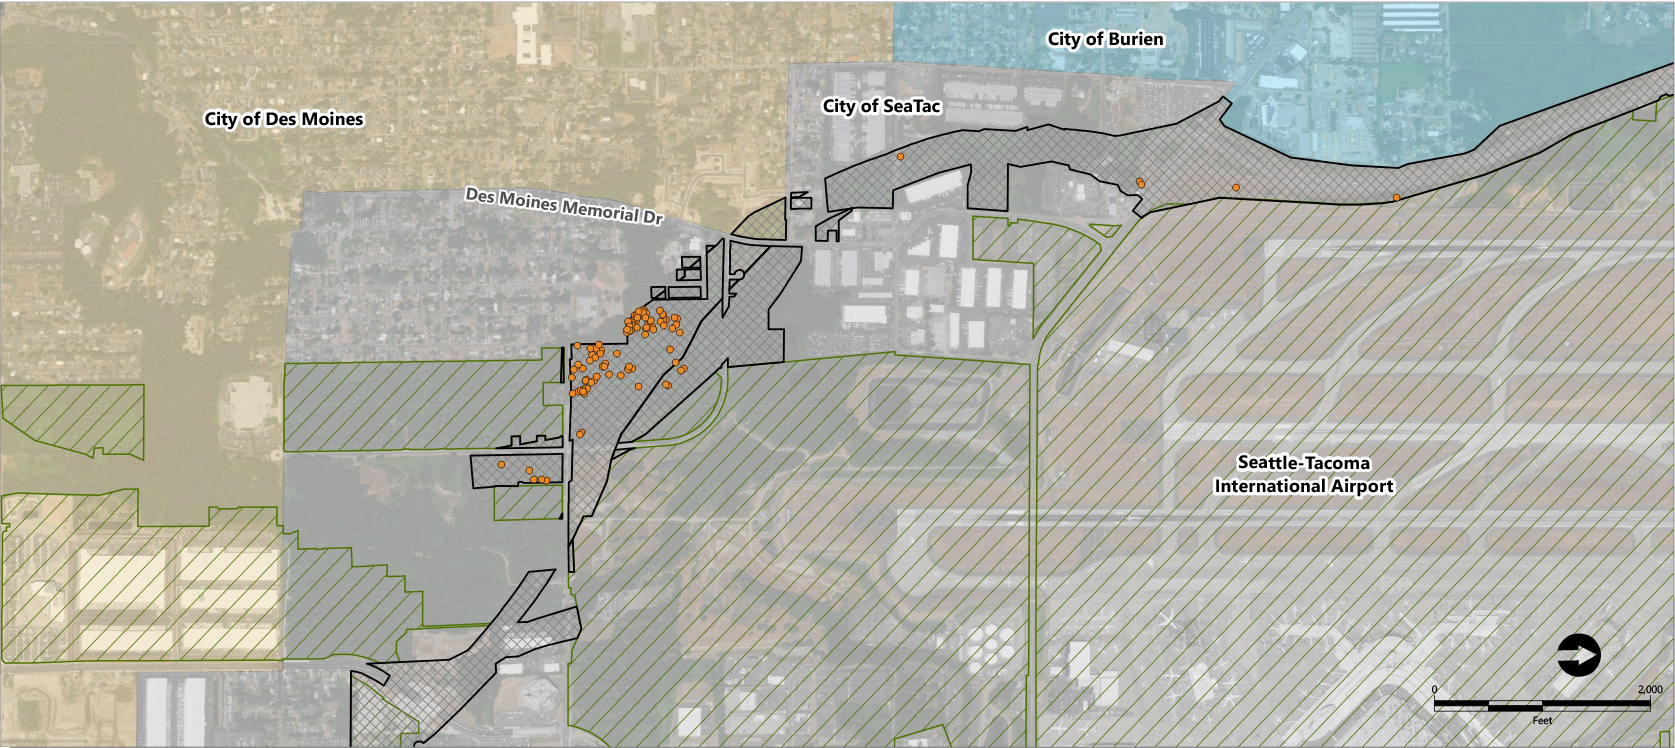 Map showing site vicinity and locations of obstructions, including all jurisdictions.